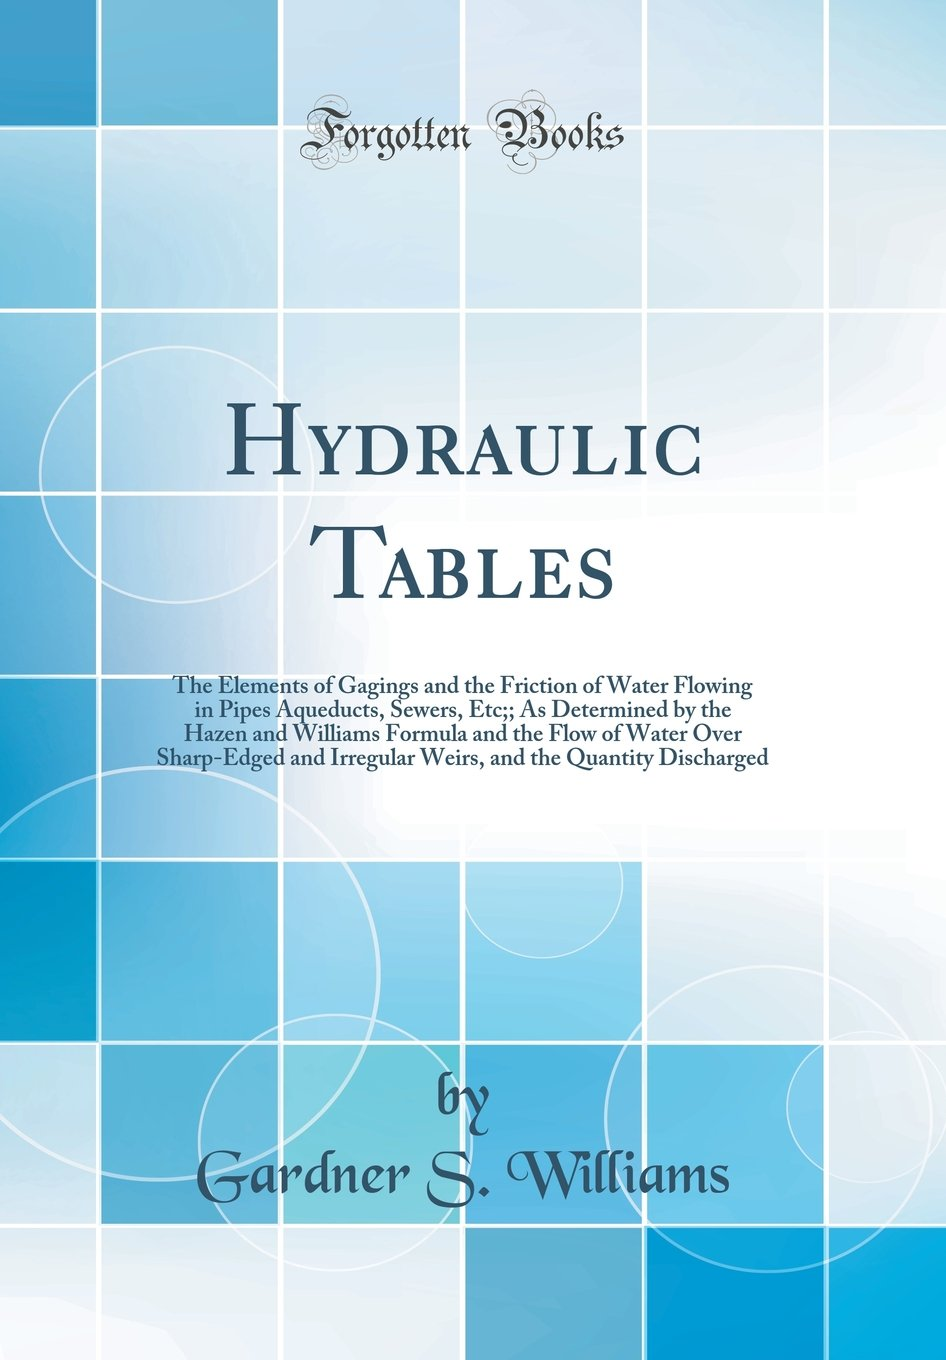 Hydraulic Tables: The Elements of Gagings and the Friction